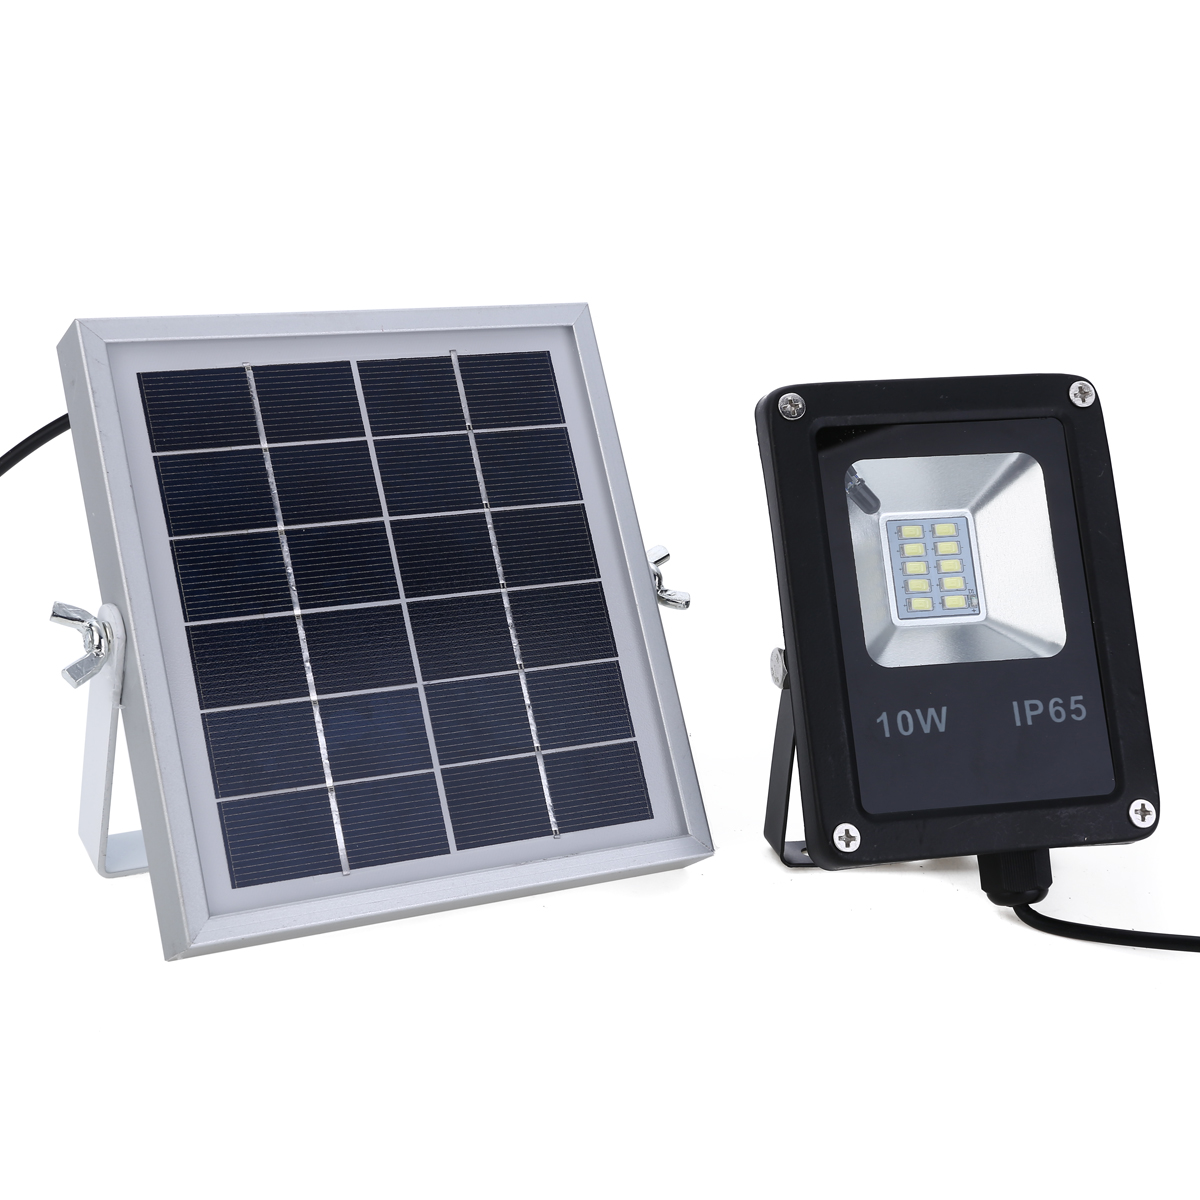 10W LED Waterproof Solar Powered Sensor Flood Light with Remote Control Garden Outdoor Security Solar Lamp10W LED Waterproof Solar Powered Sensor Flood Light with Remote Control Garden Outdoor Security Solar Lamp